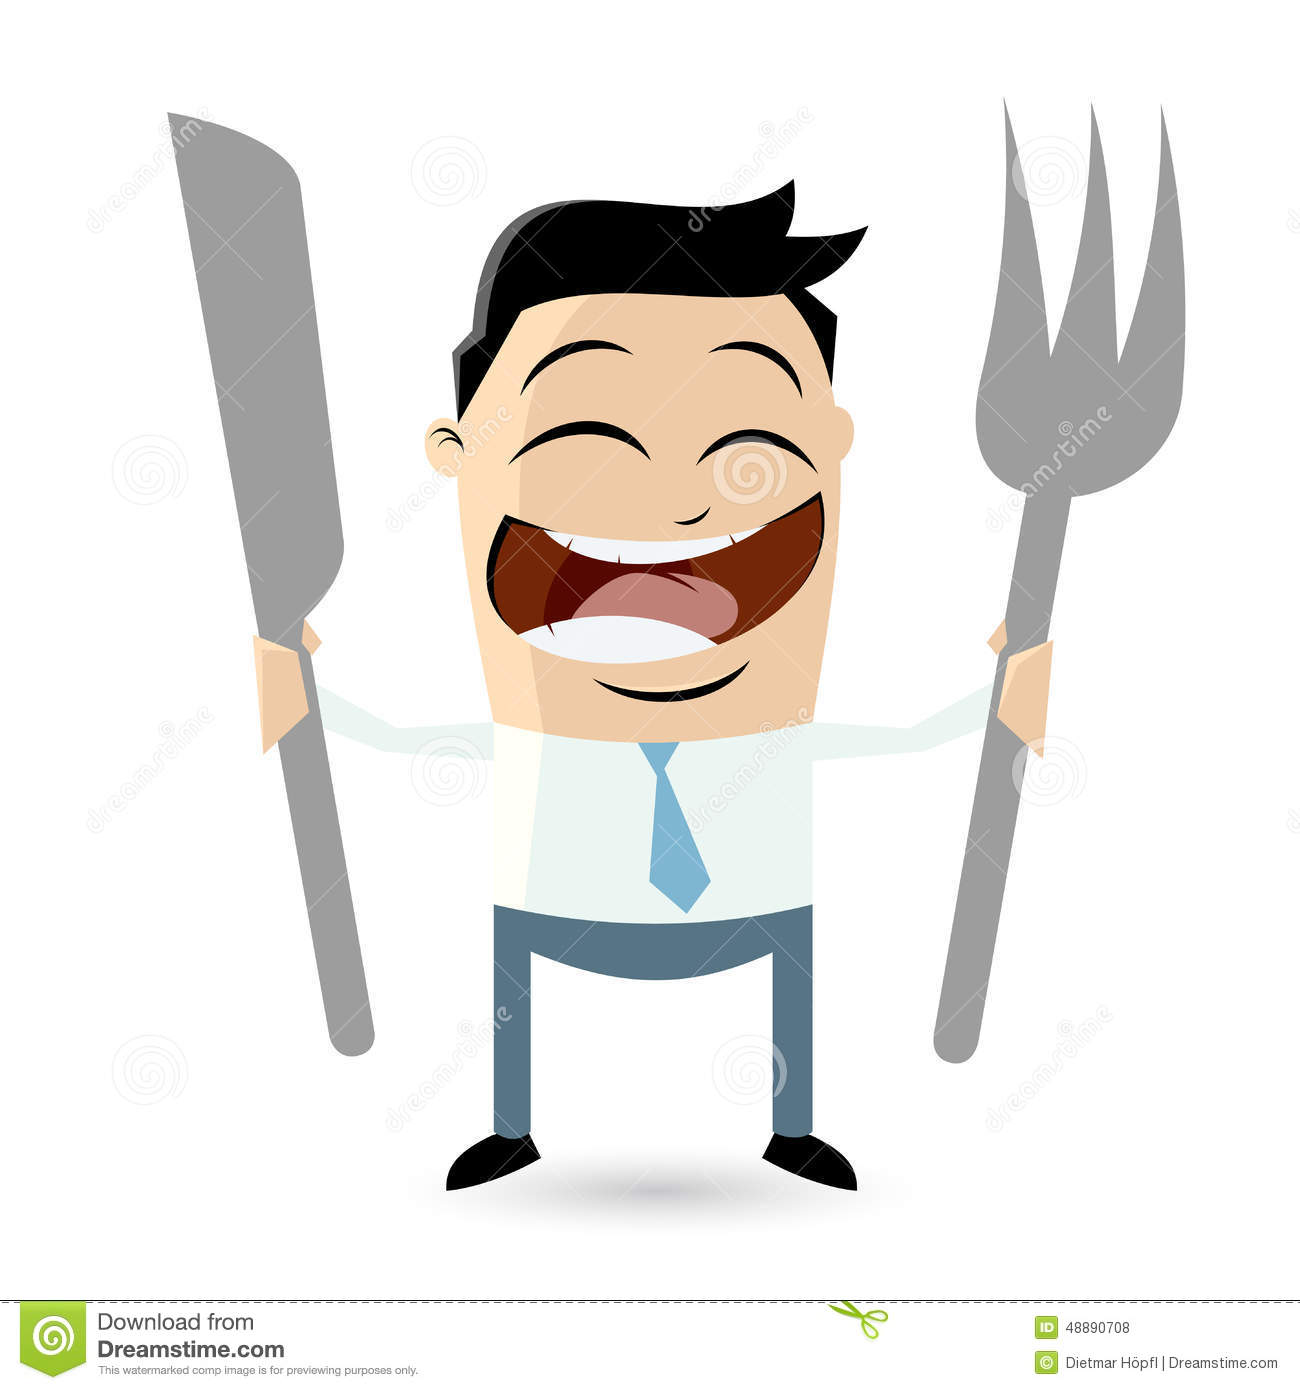 Waiting for food clipart clip free Happy Man Is Waiting For Food Stock Vector - Image: 48890708 clip free